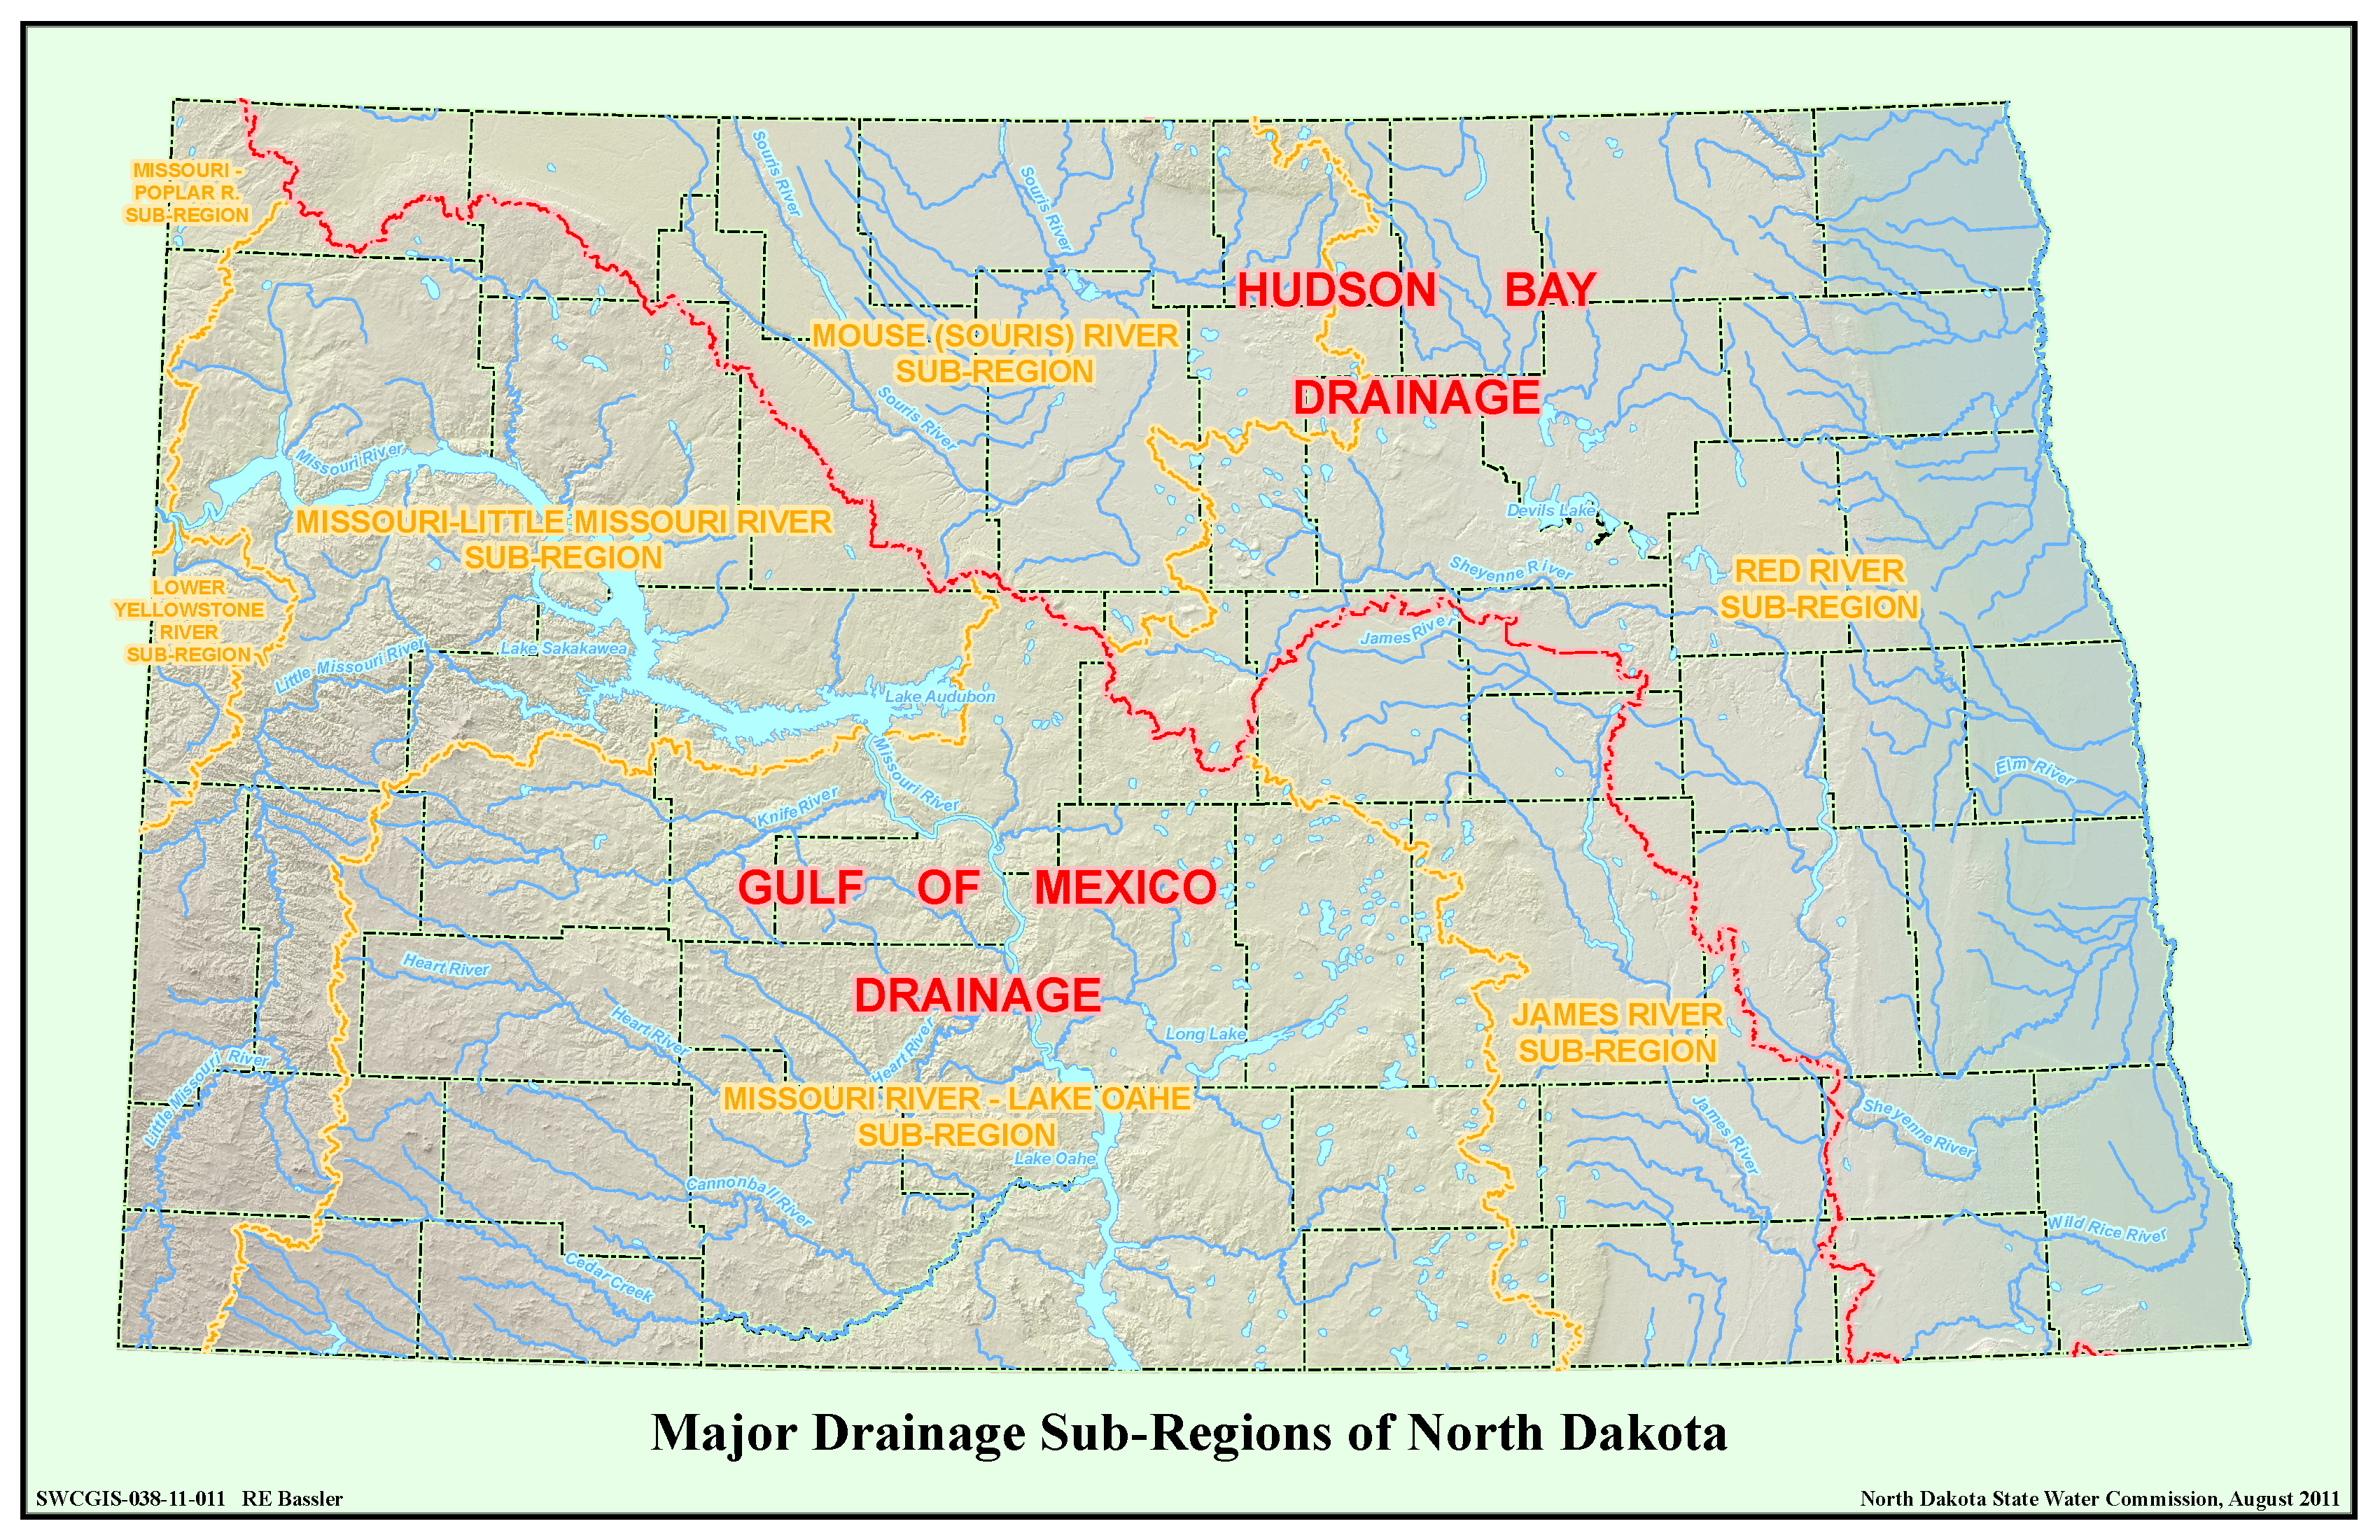 Major Drainage Sub-Regions of North Dakota